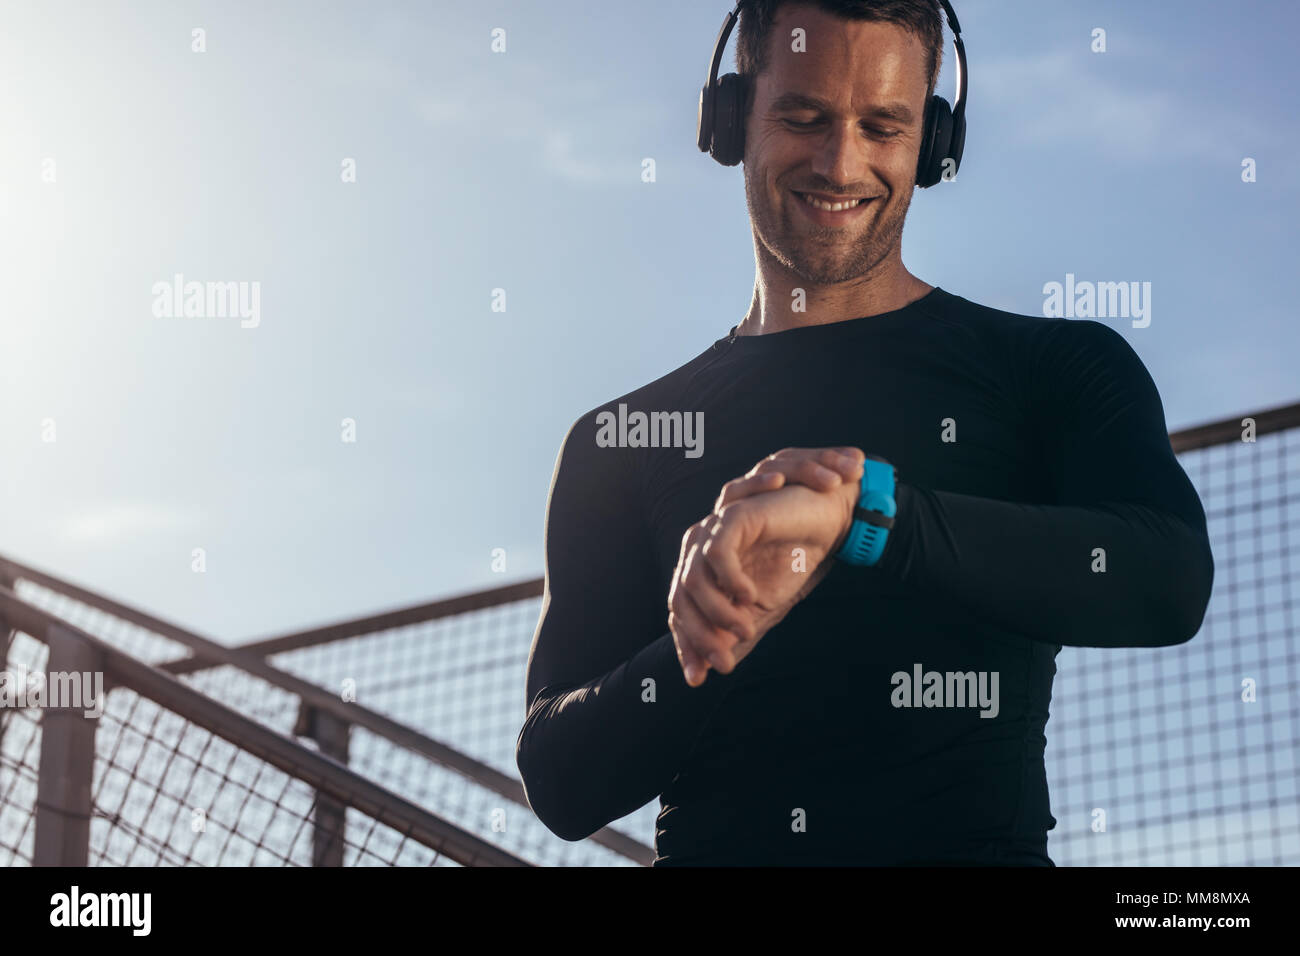 Man standing outdoors with headphones using a smartwatch to monitor his progress. Male athlete resting and checking his performance on fitness smartwa - Stock Image